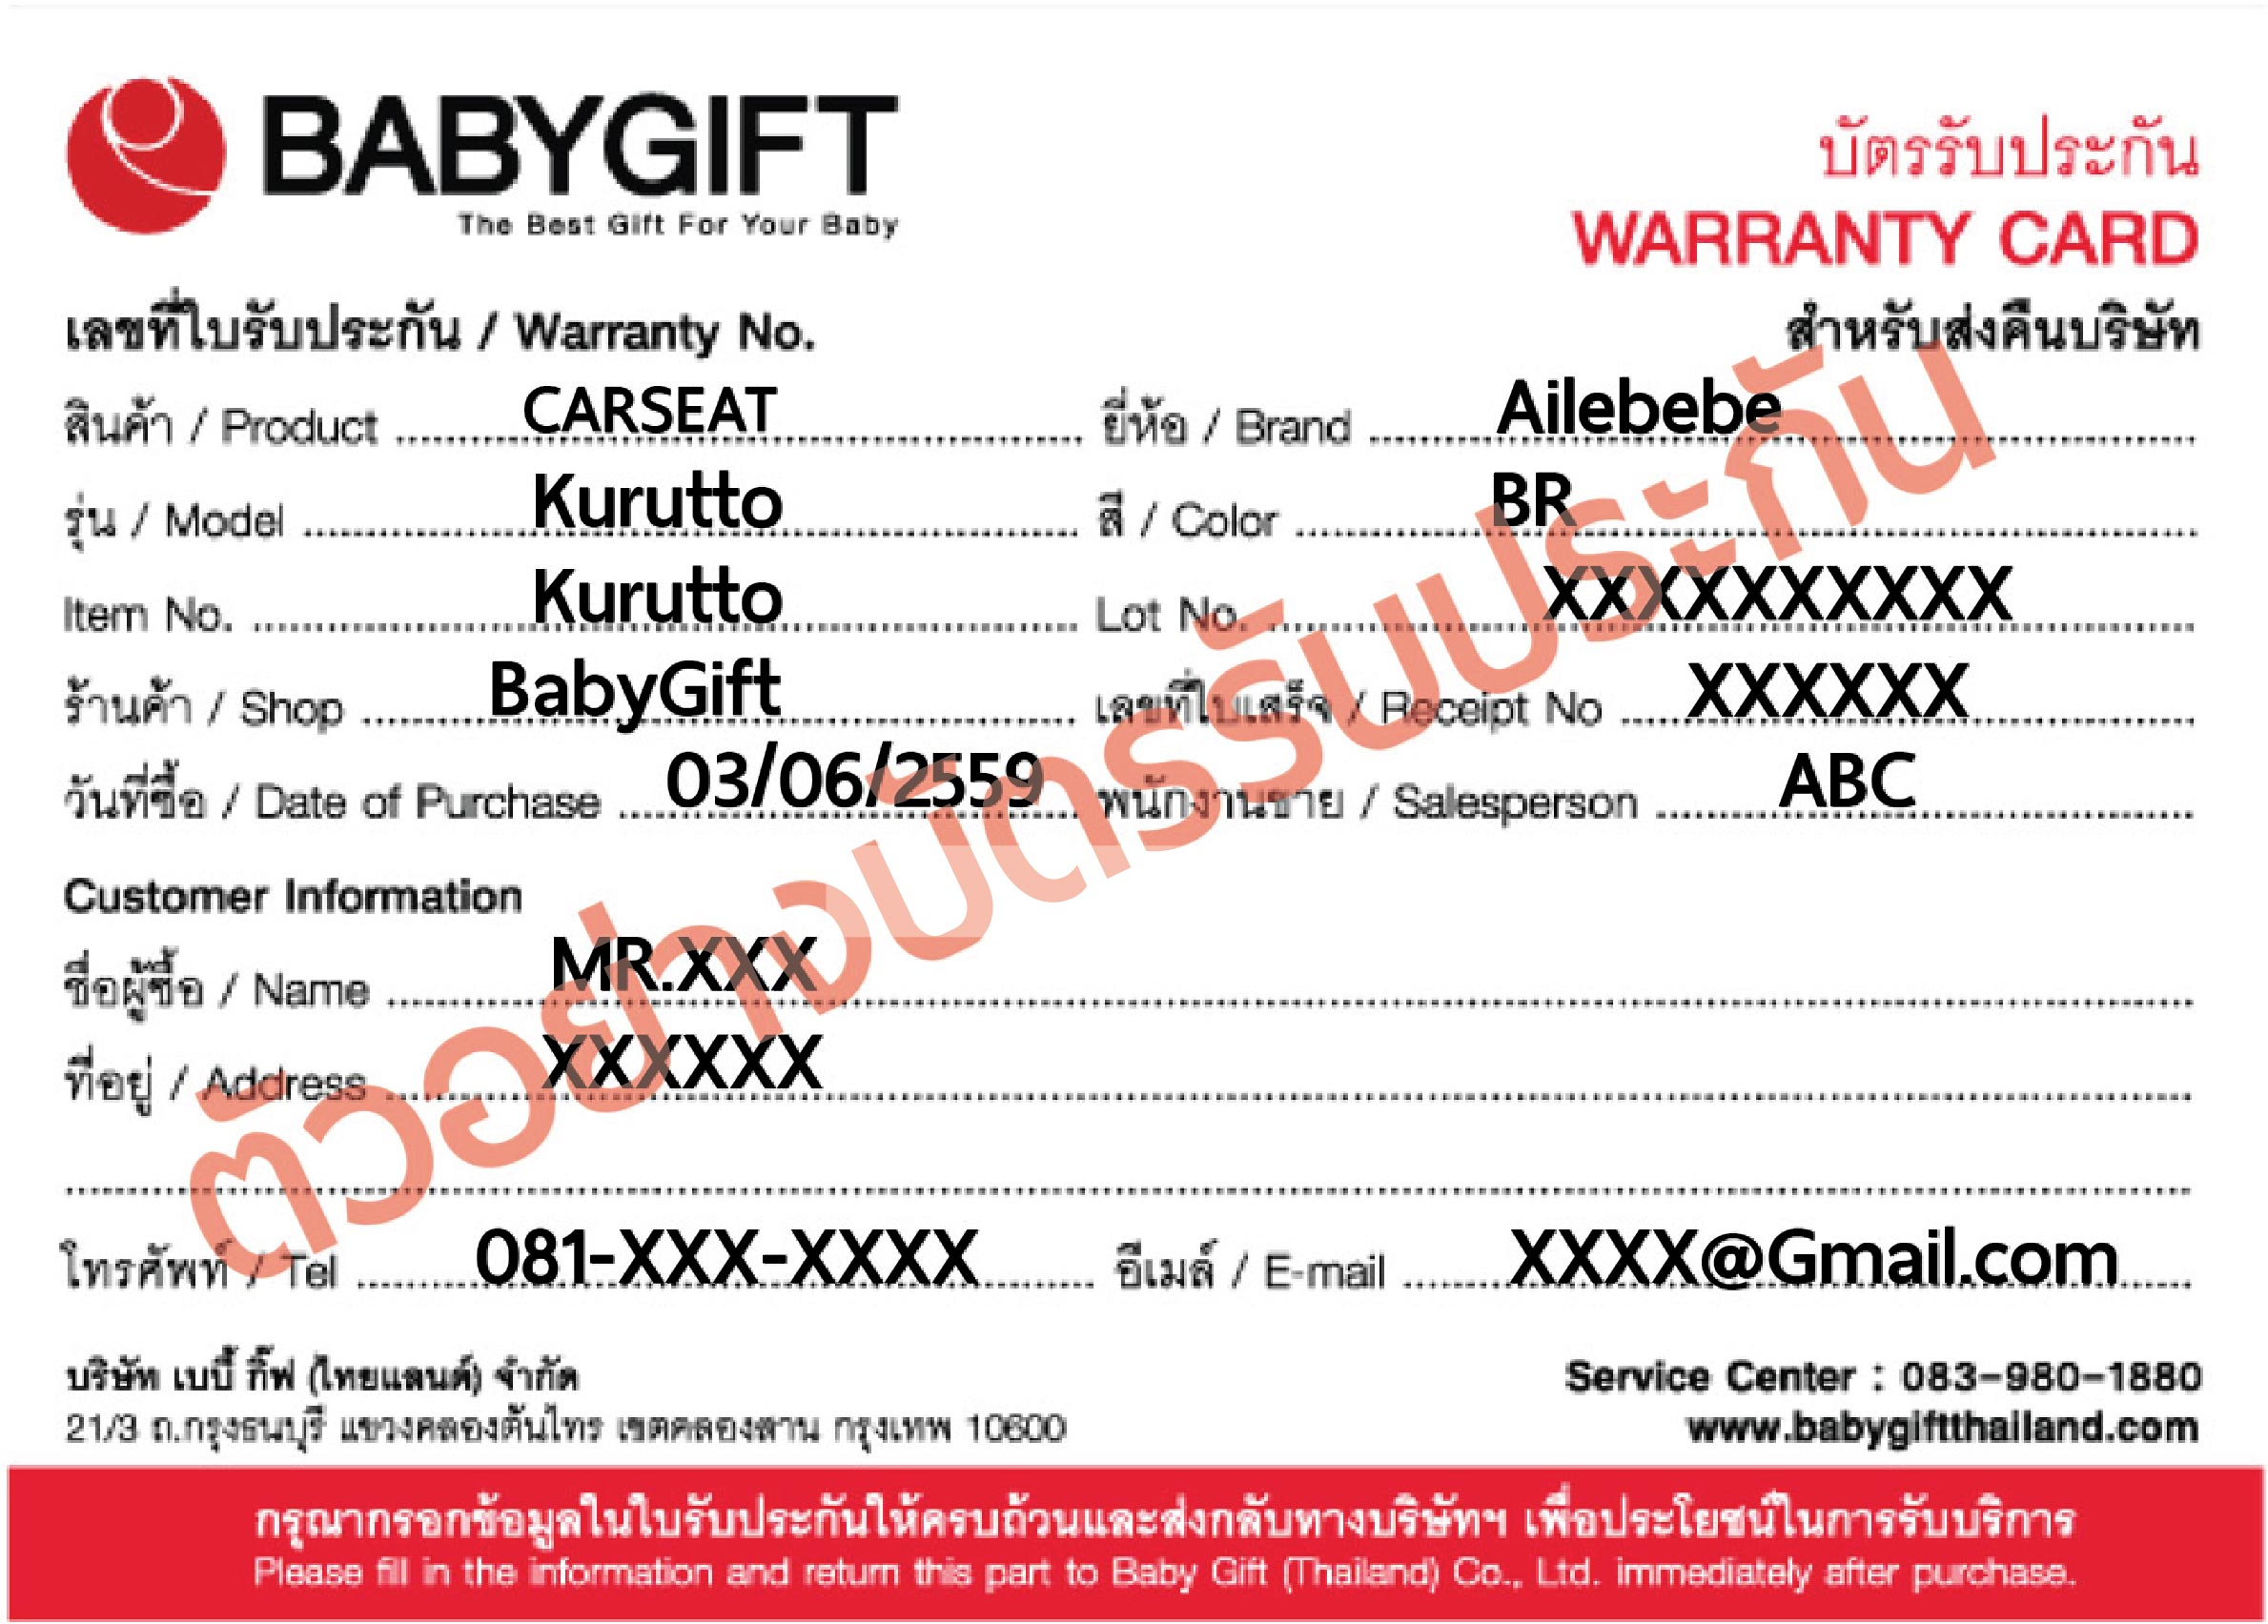 Baby Gift Thailand Services Example Waranty Card 01